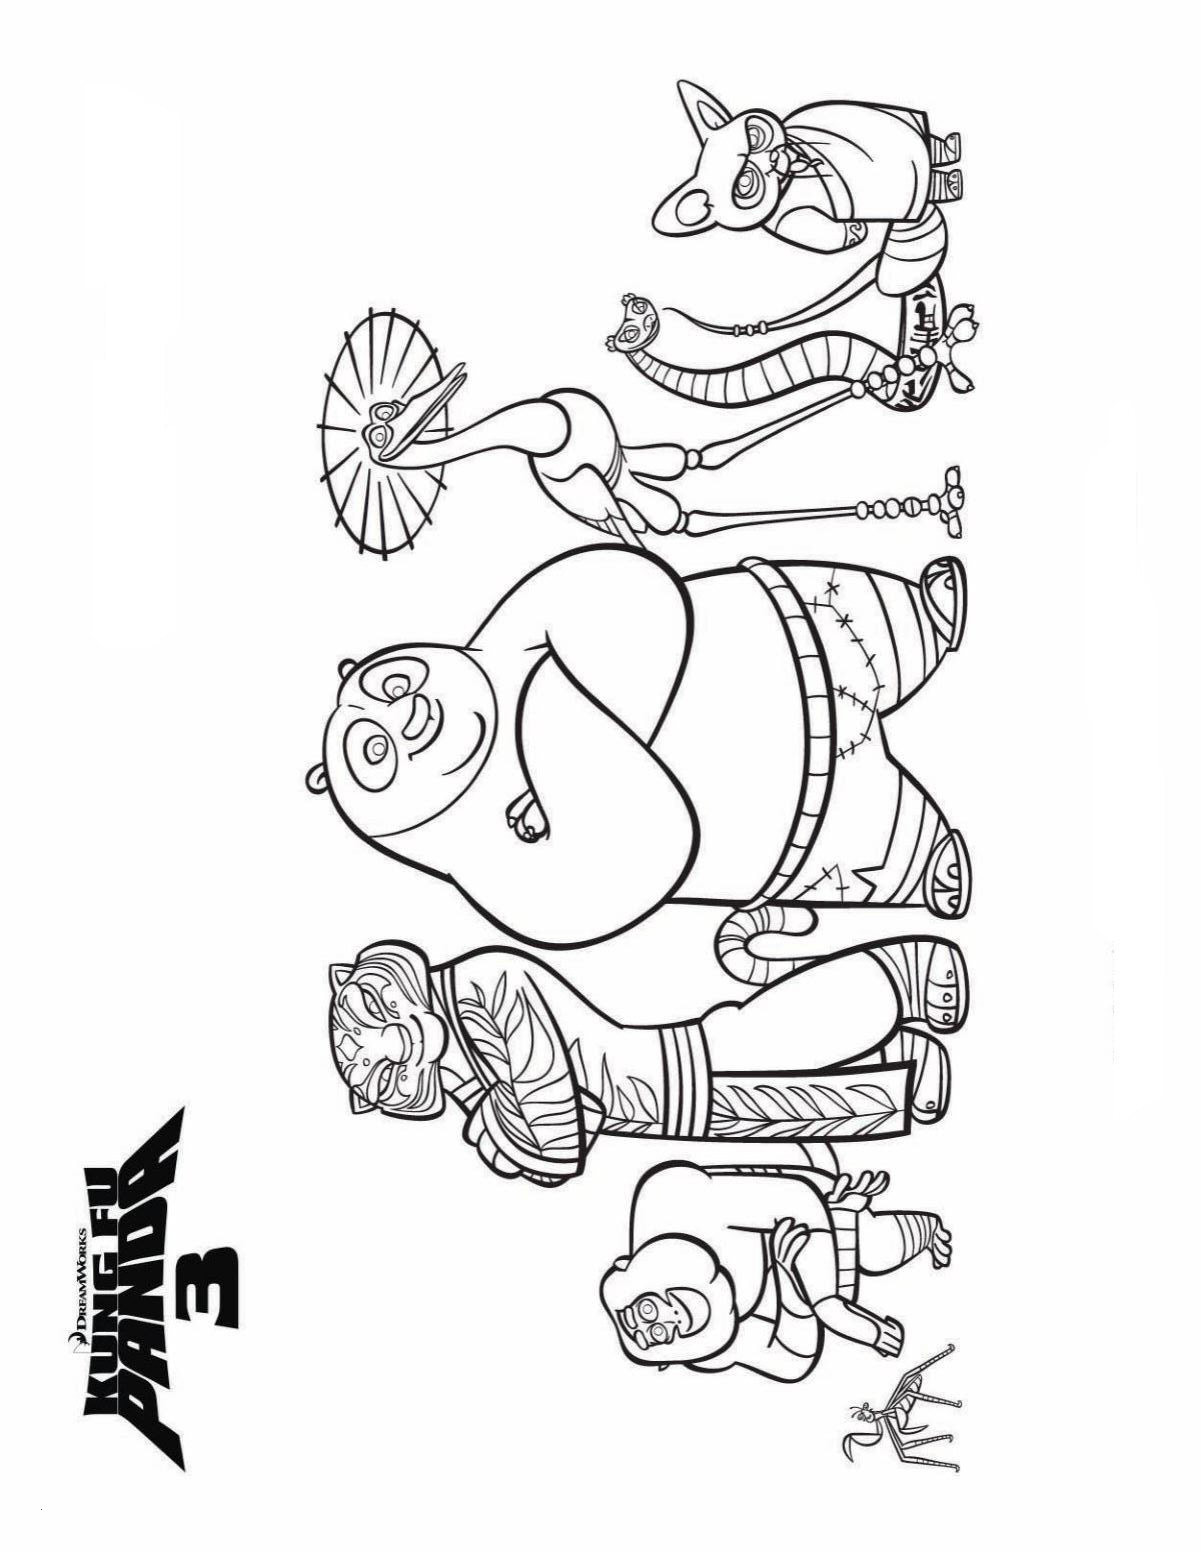 Anime Engel Ausmalbilder Neu Coloring Pages Template Part 534 Luxus Ausmalbilder Kung Fu Panda 3 Das Bild